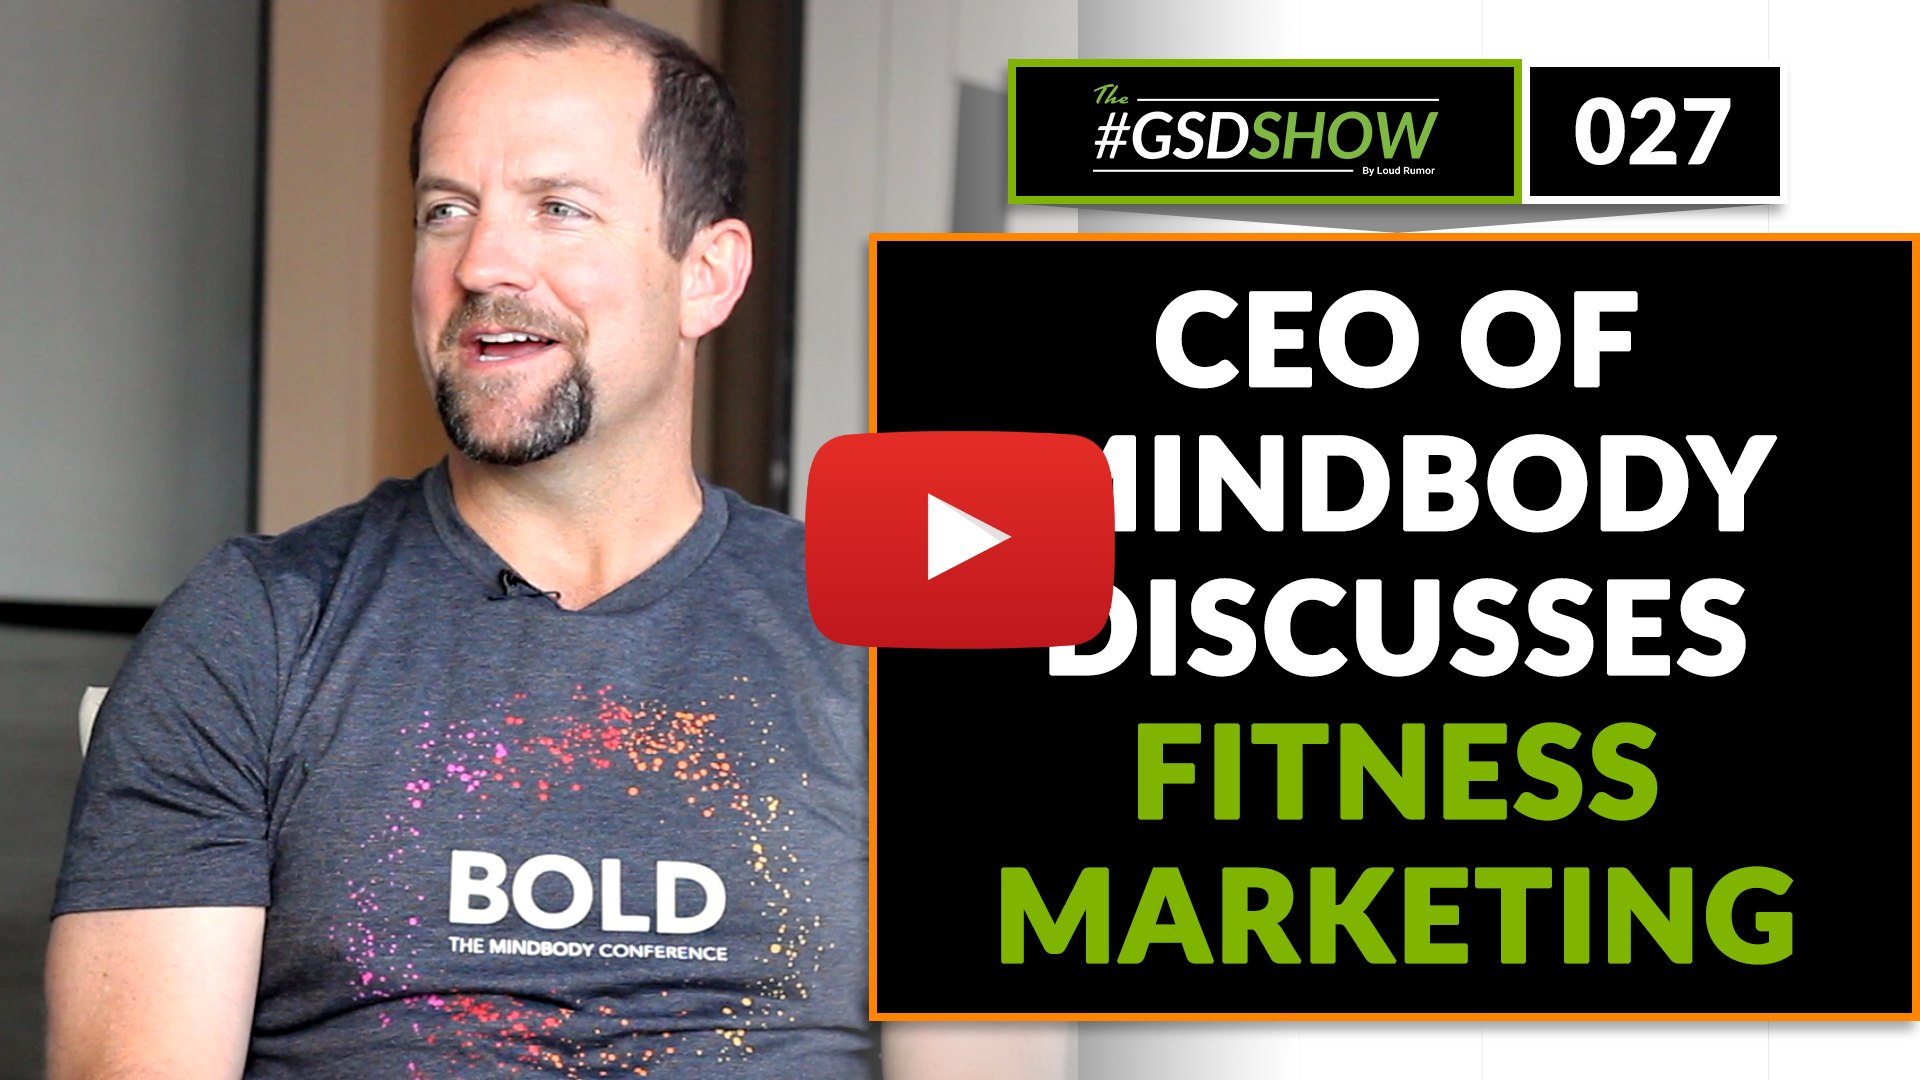 GSD Show episode 027 with MINDBODY CEO Rick Stollmeyer